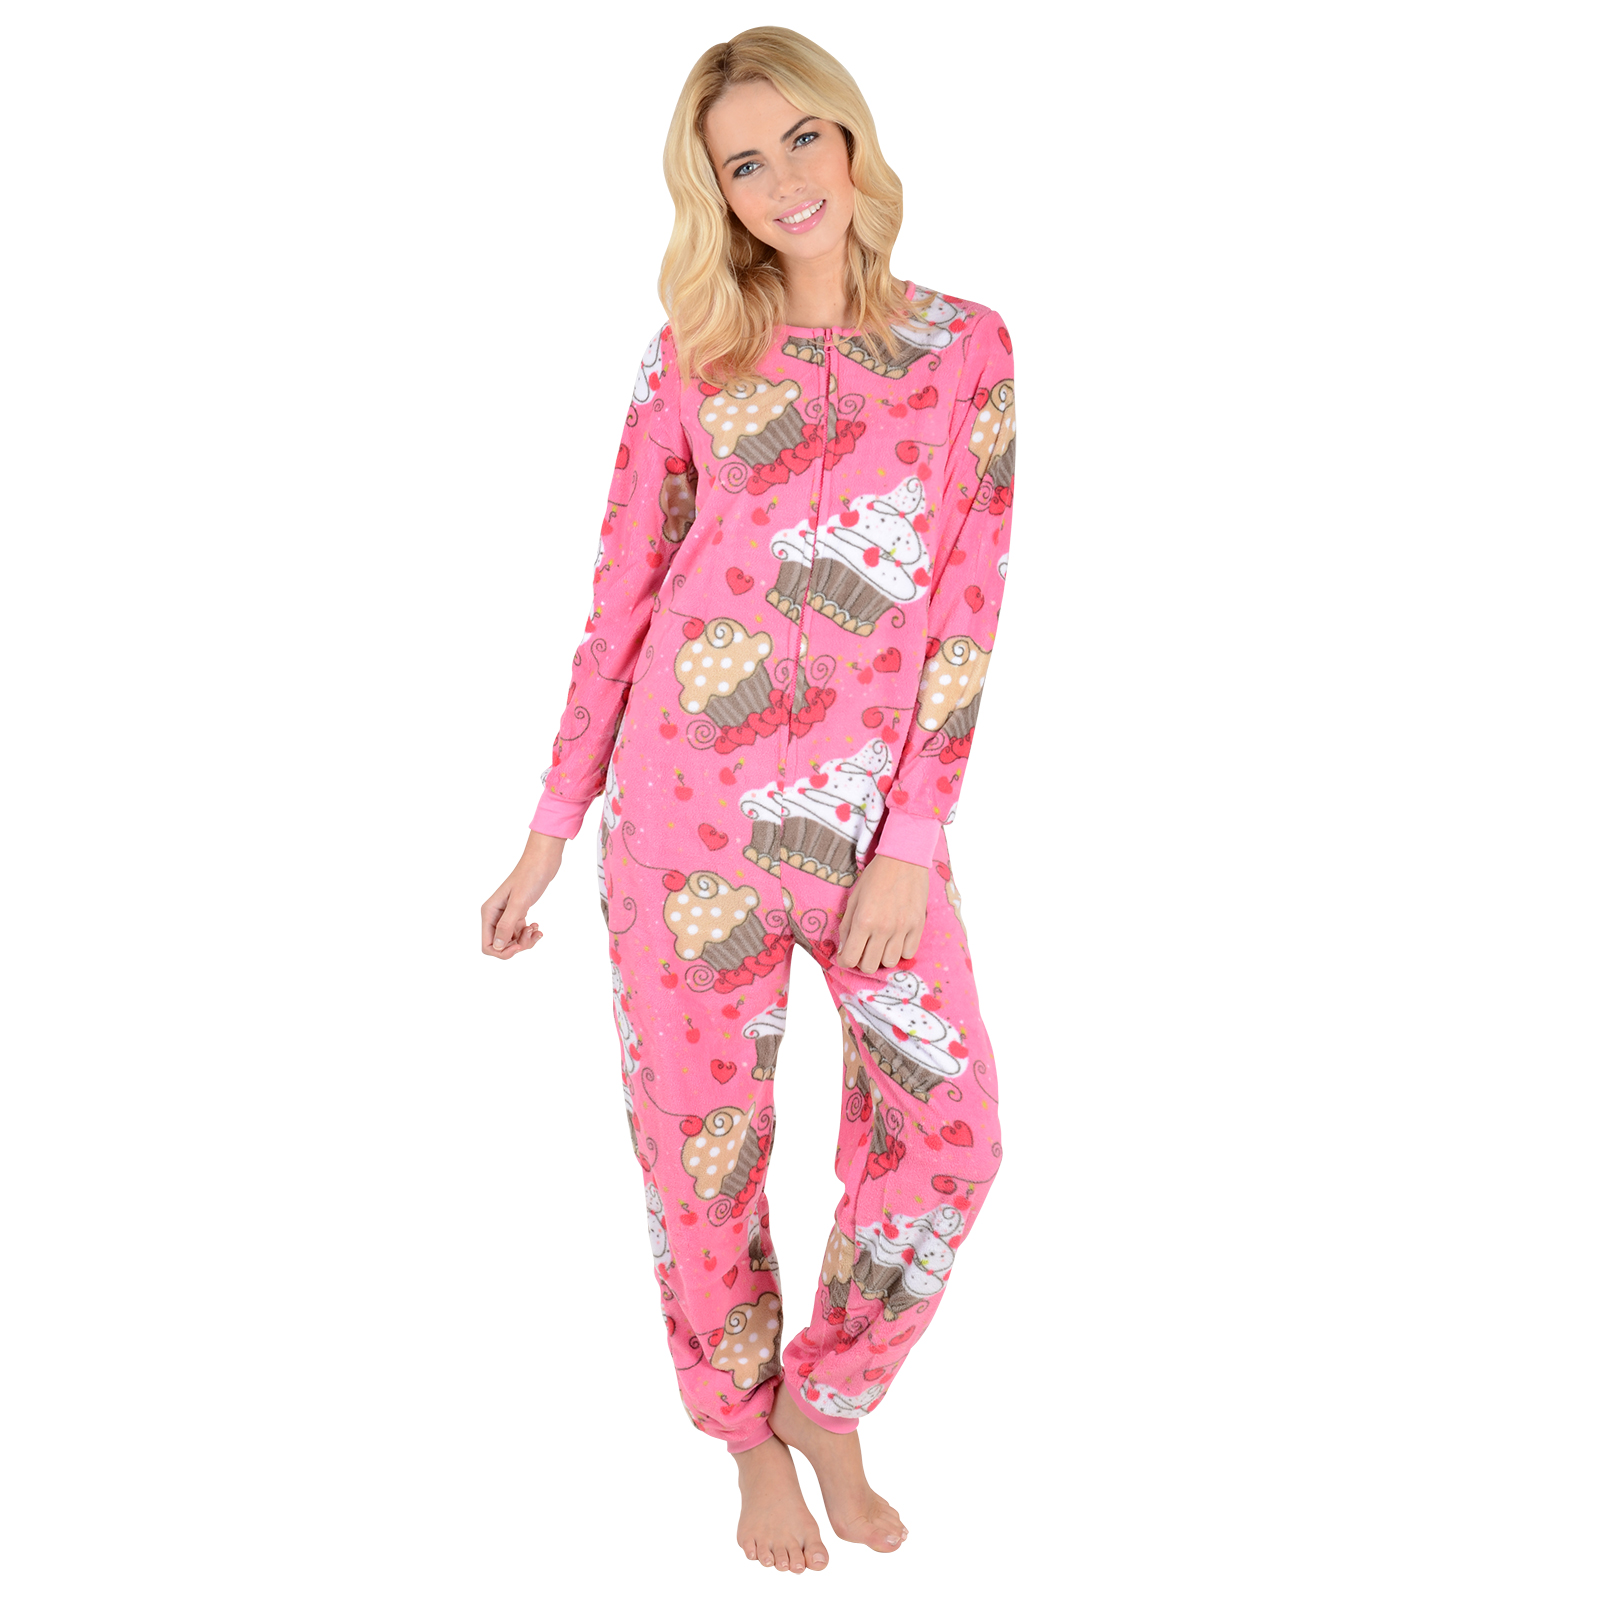 Find great deals on eBay for one piece pajamas. Shop with confidence.